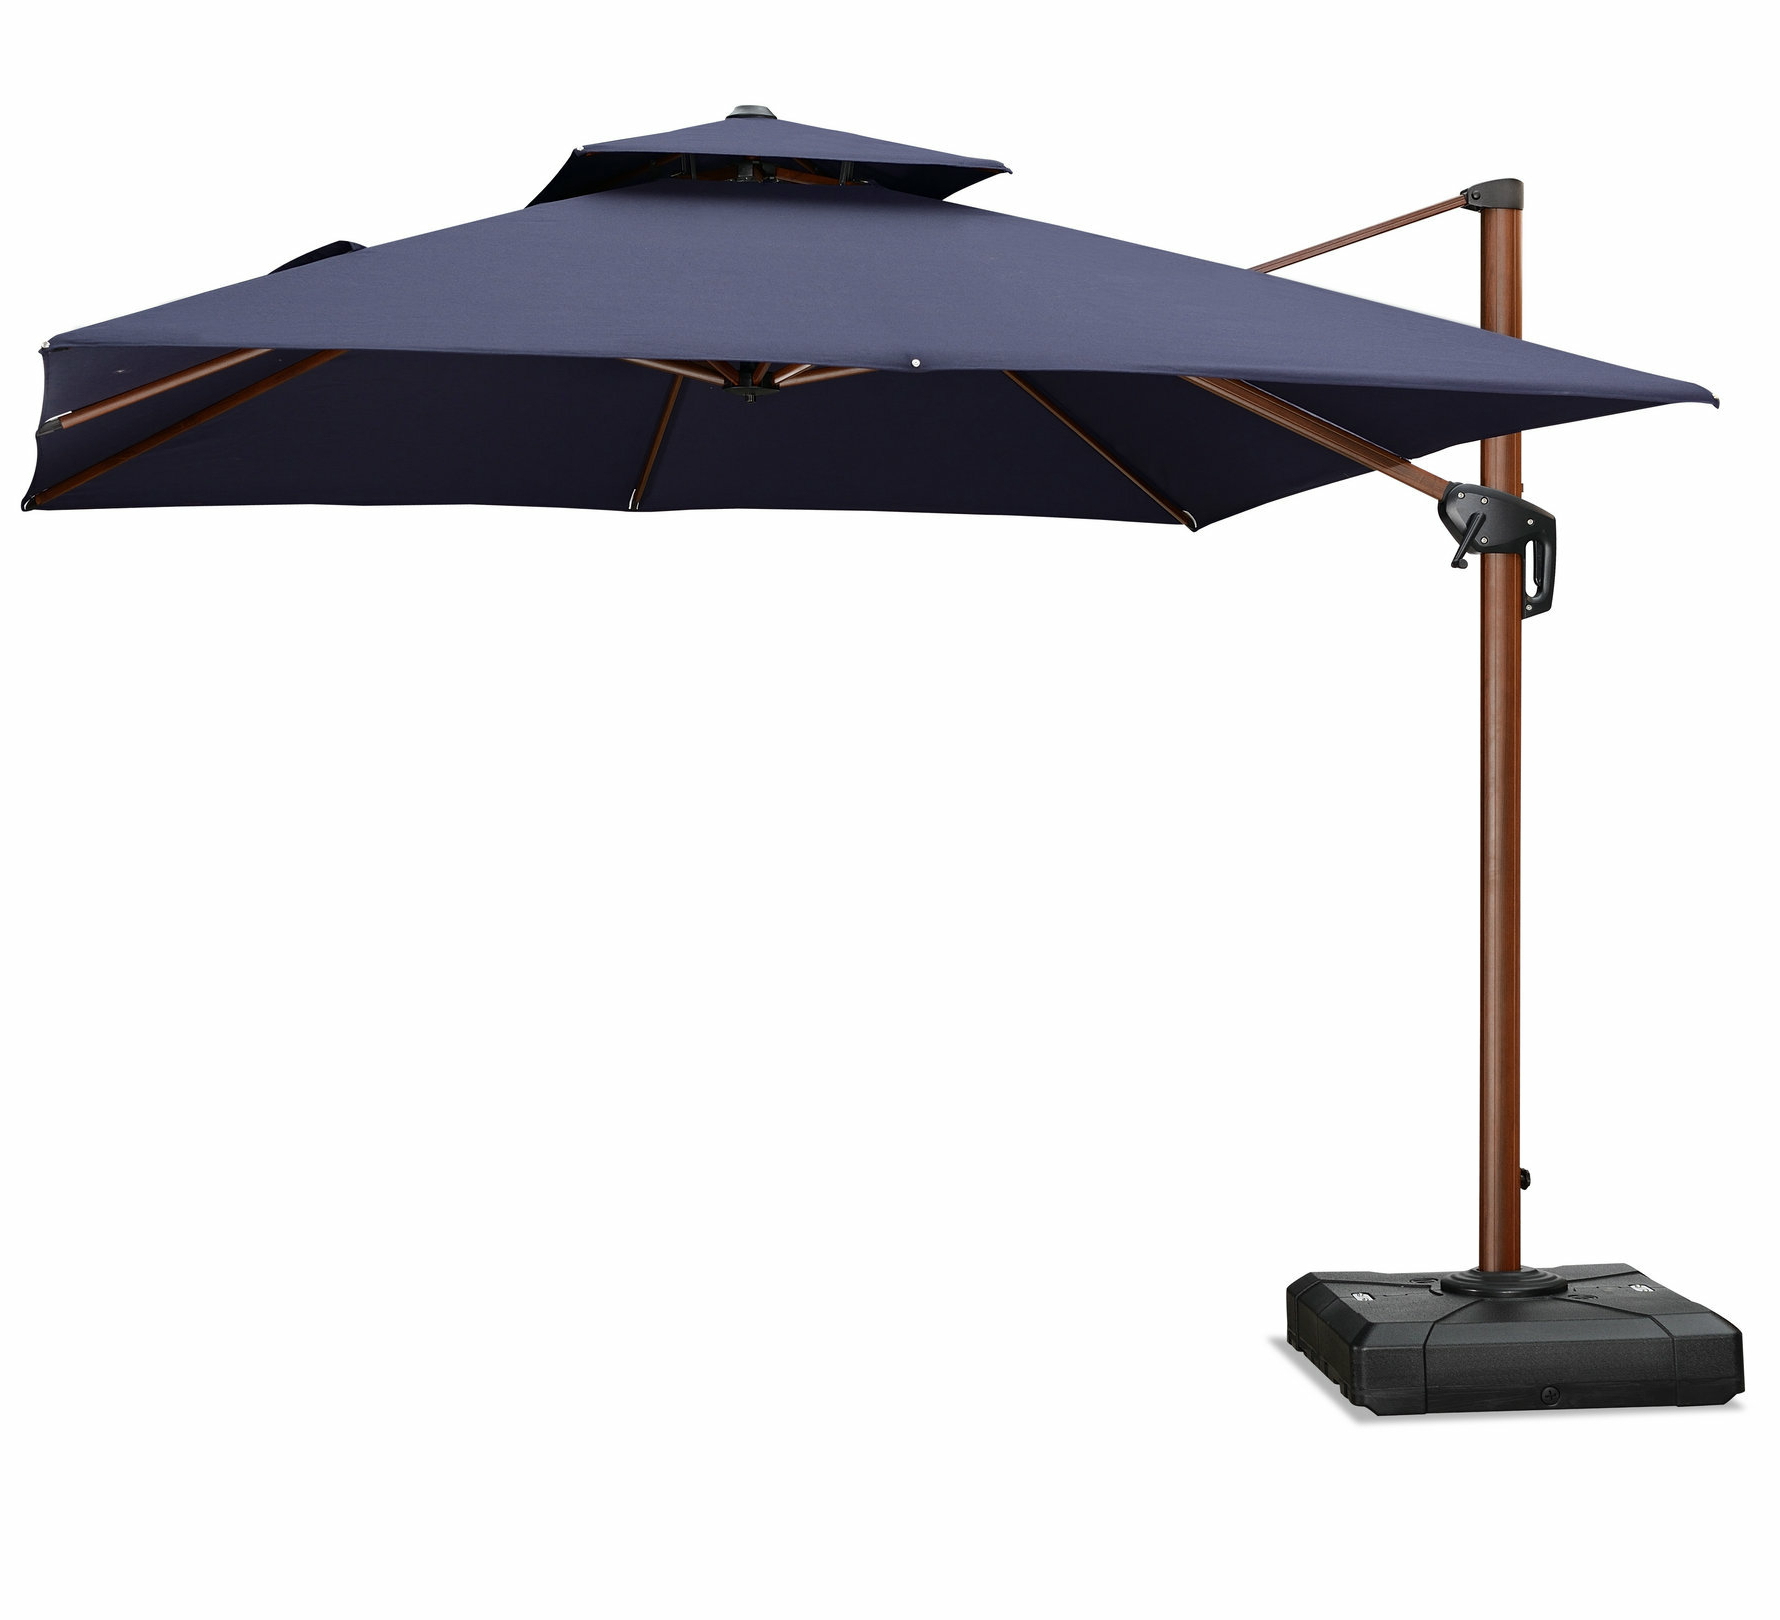 Spitler Square Cantilever Umbrellas With Regard To 2020 Waddell 10' Square Cantilever Umbrella (View 7 of 20)